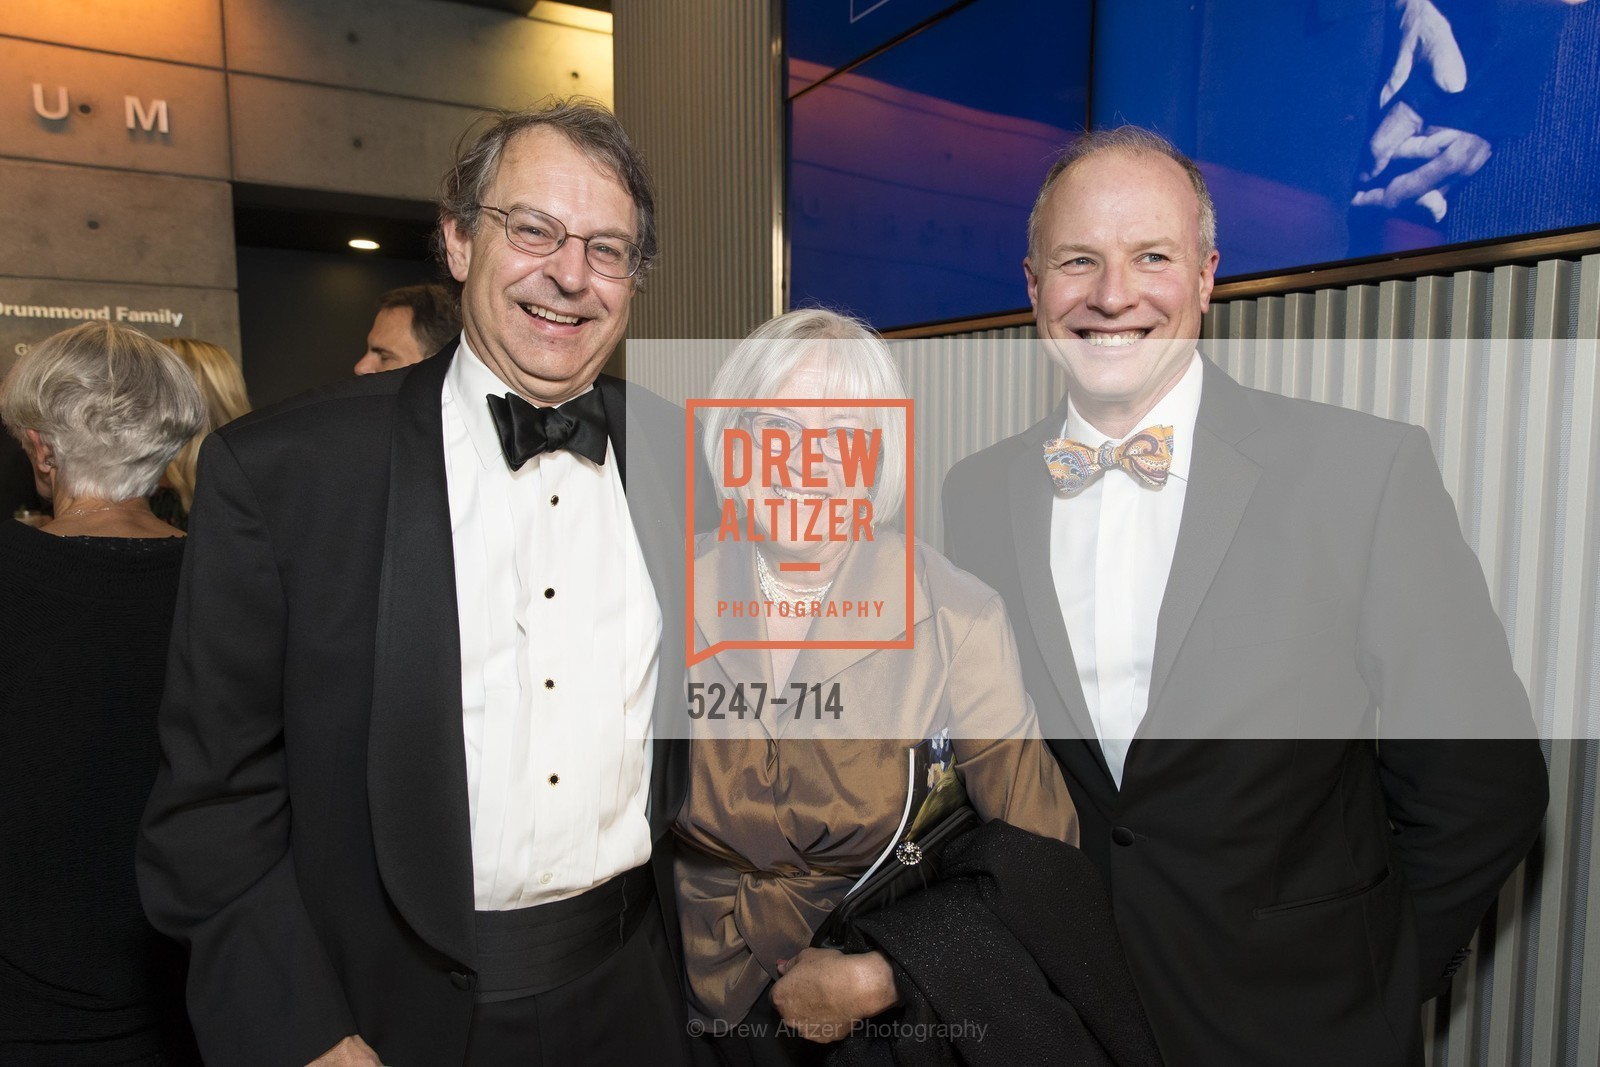 Peter Muhs, Kathryn Muhs, Don Derheim, SFJAZZ Gala 2015 Honors Joni Mitchell with Lifetime Achievement Award, US, May 9th, 2015,Drew Altizer, Drew Altizer Photography, full-service agency, private events, San Francisco photographer, photographer california